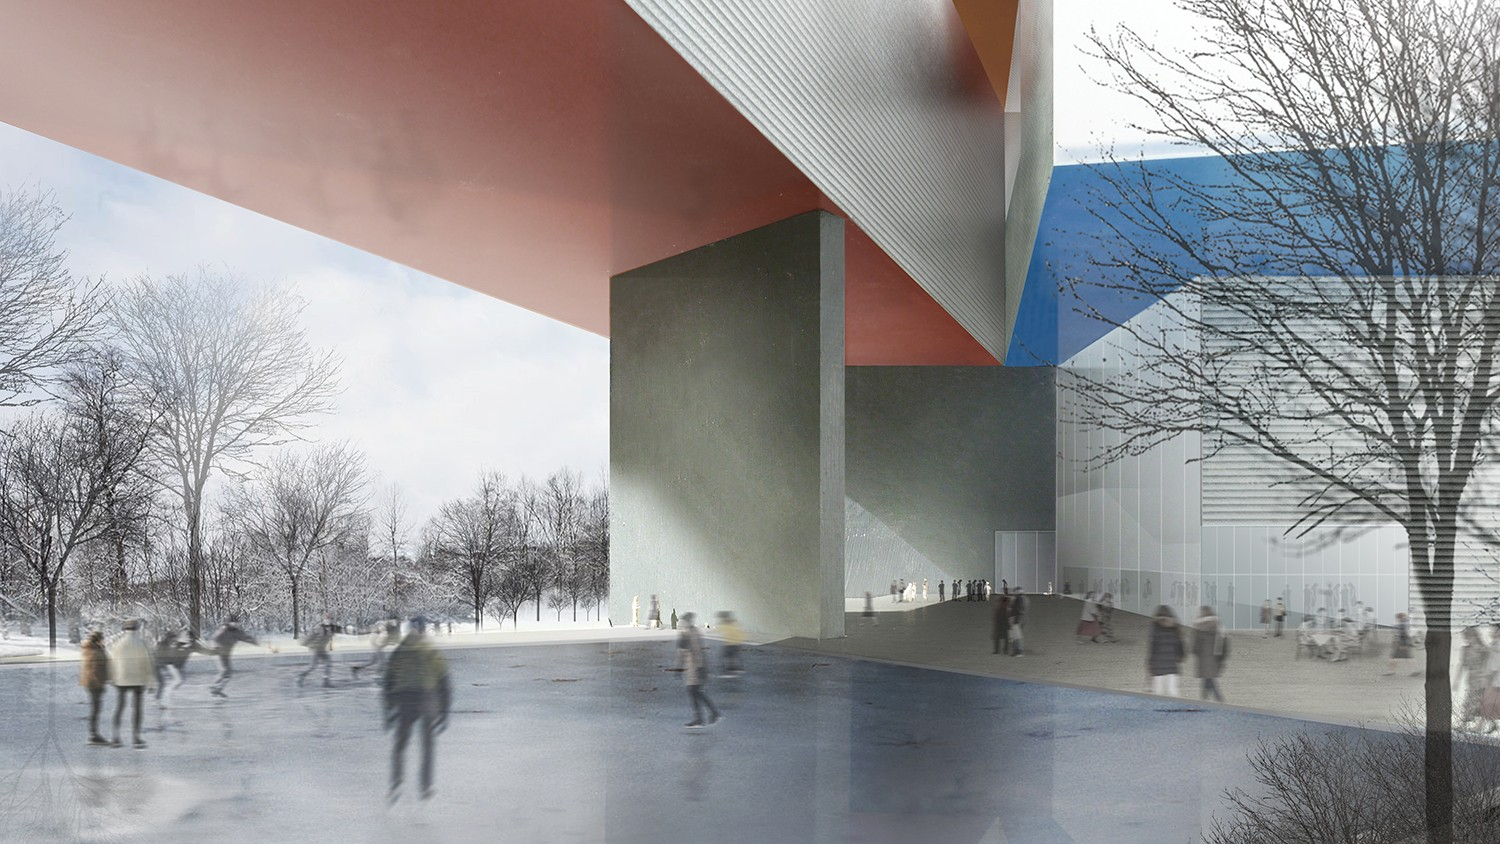 https://stevenholl.sfo2.digitaloceanspaces.com/uploads/projects/project-images/StevenHollArchitects_NCCA_View_snowypond_WH.jpg